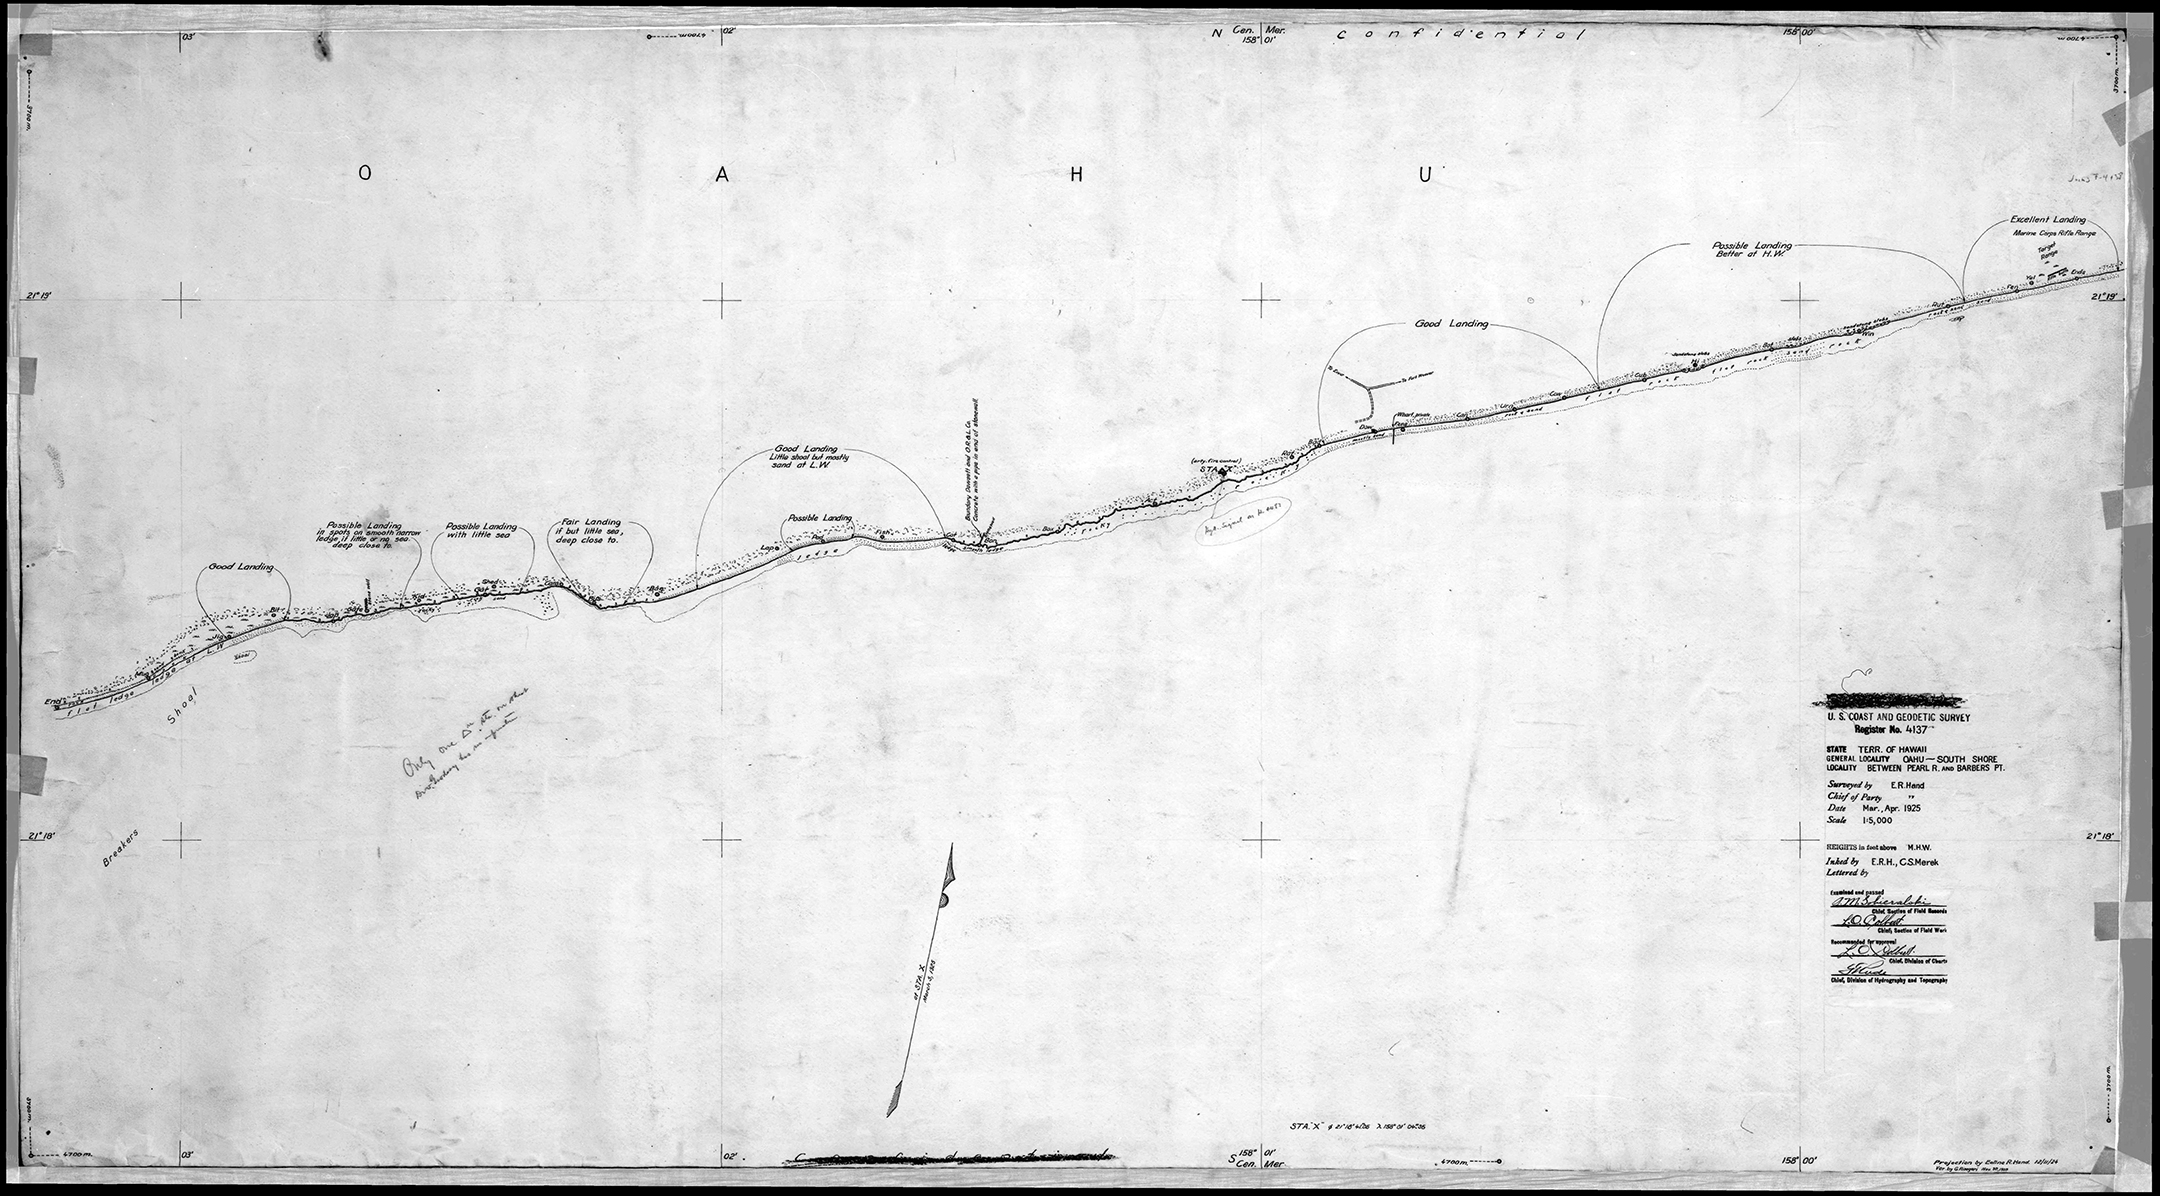 1925 u s coast and geodetic survey register no 4137 map showing sline from barbers point to marine corps rifle range